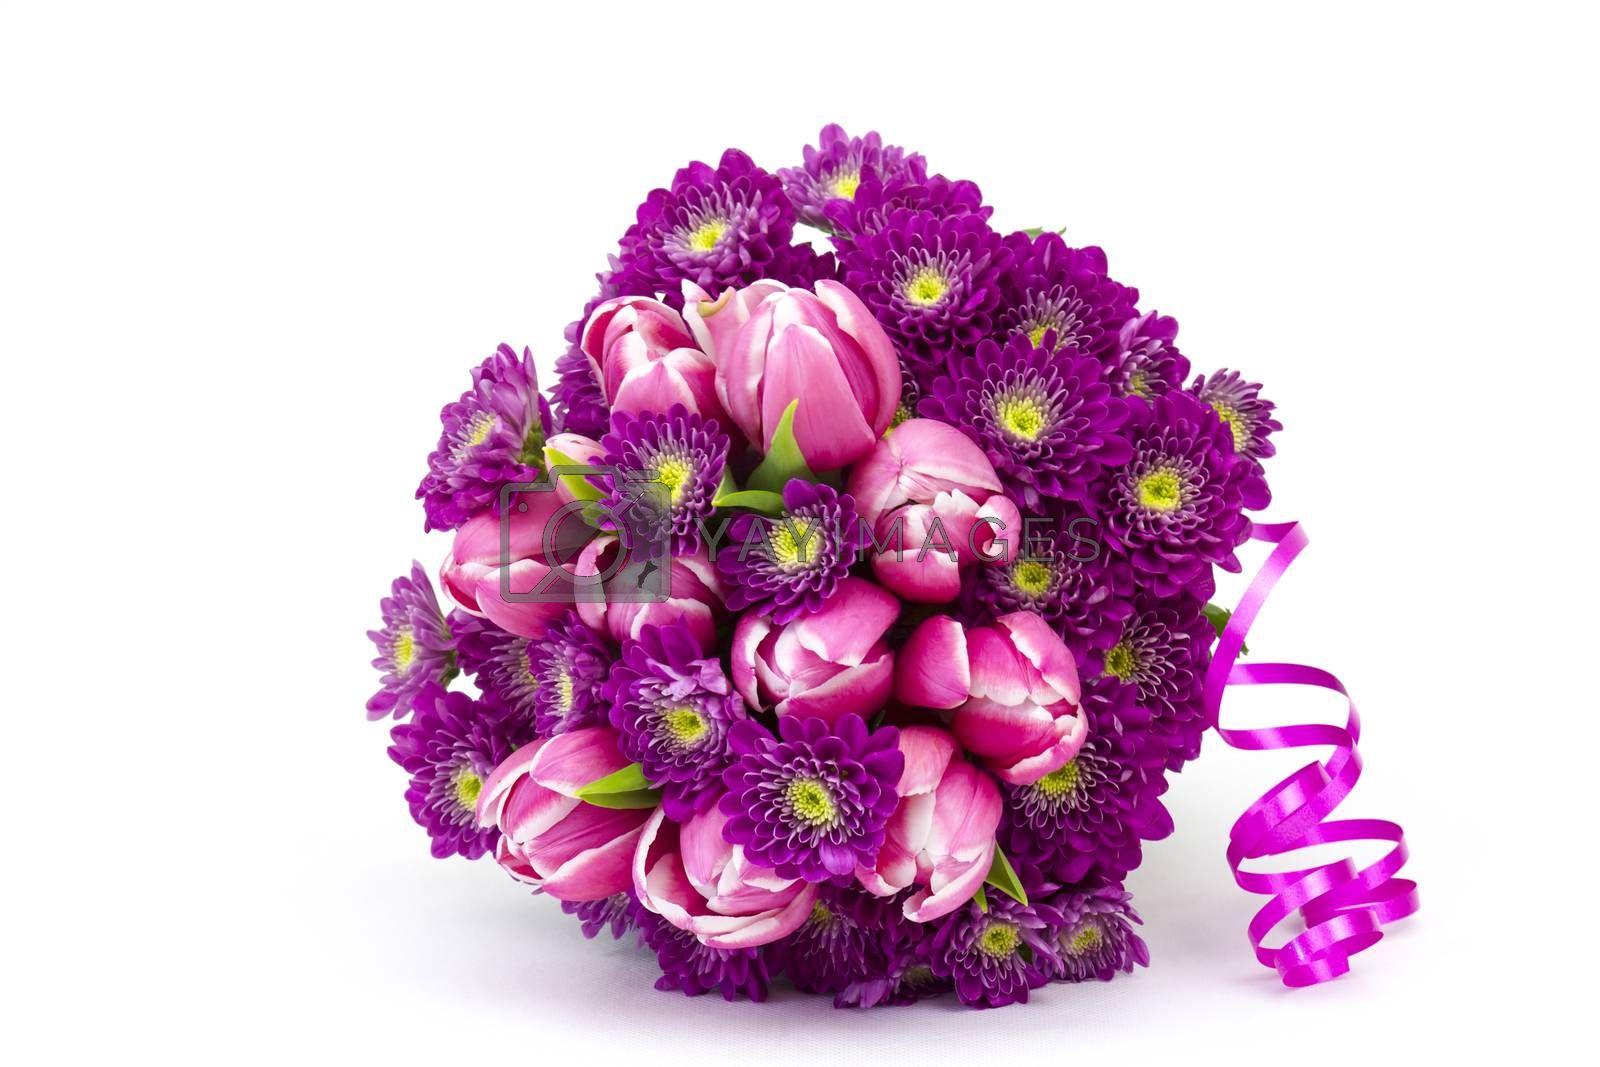 Bouquet made of tulips and chrysanthemum flowers